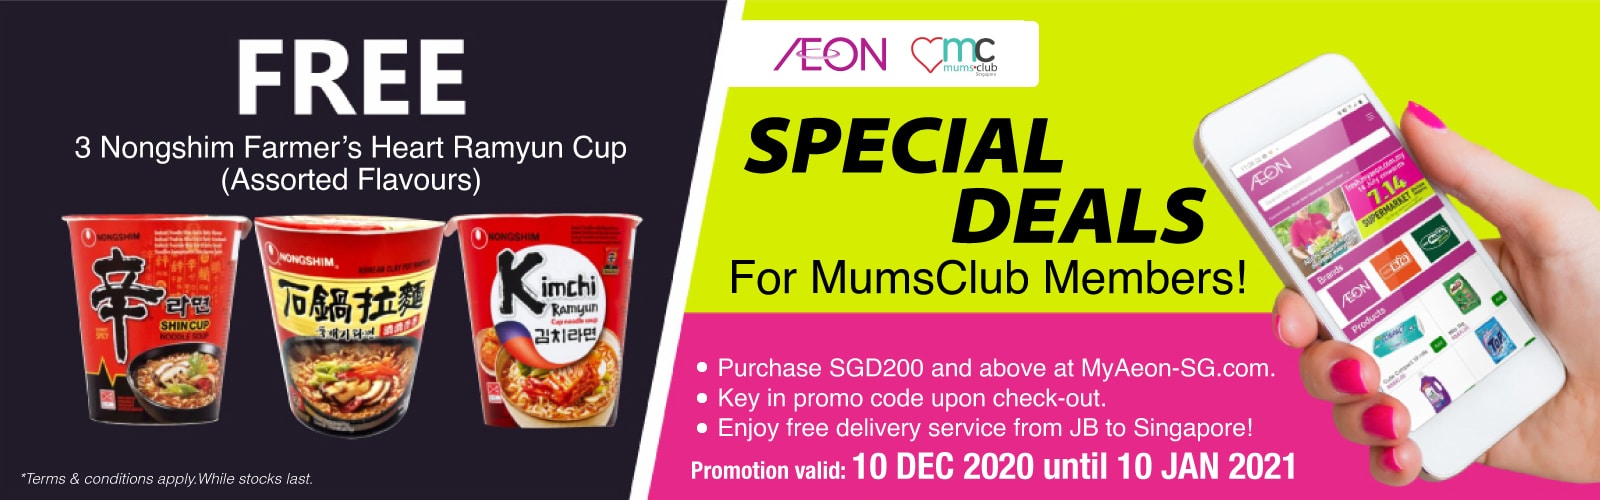 mumsclub-sg---free-cup-noodle_3